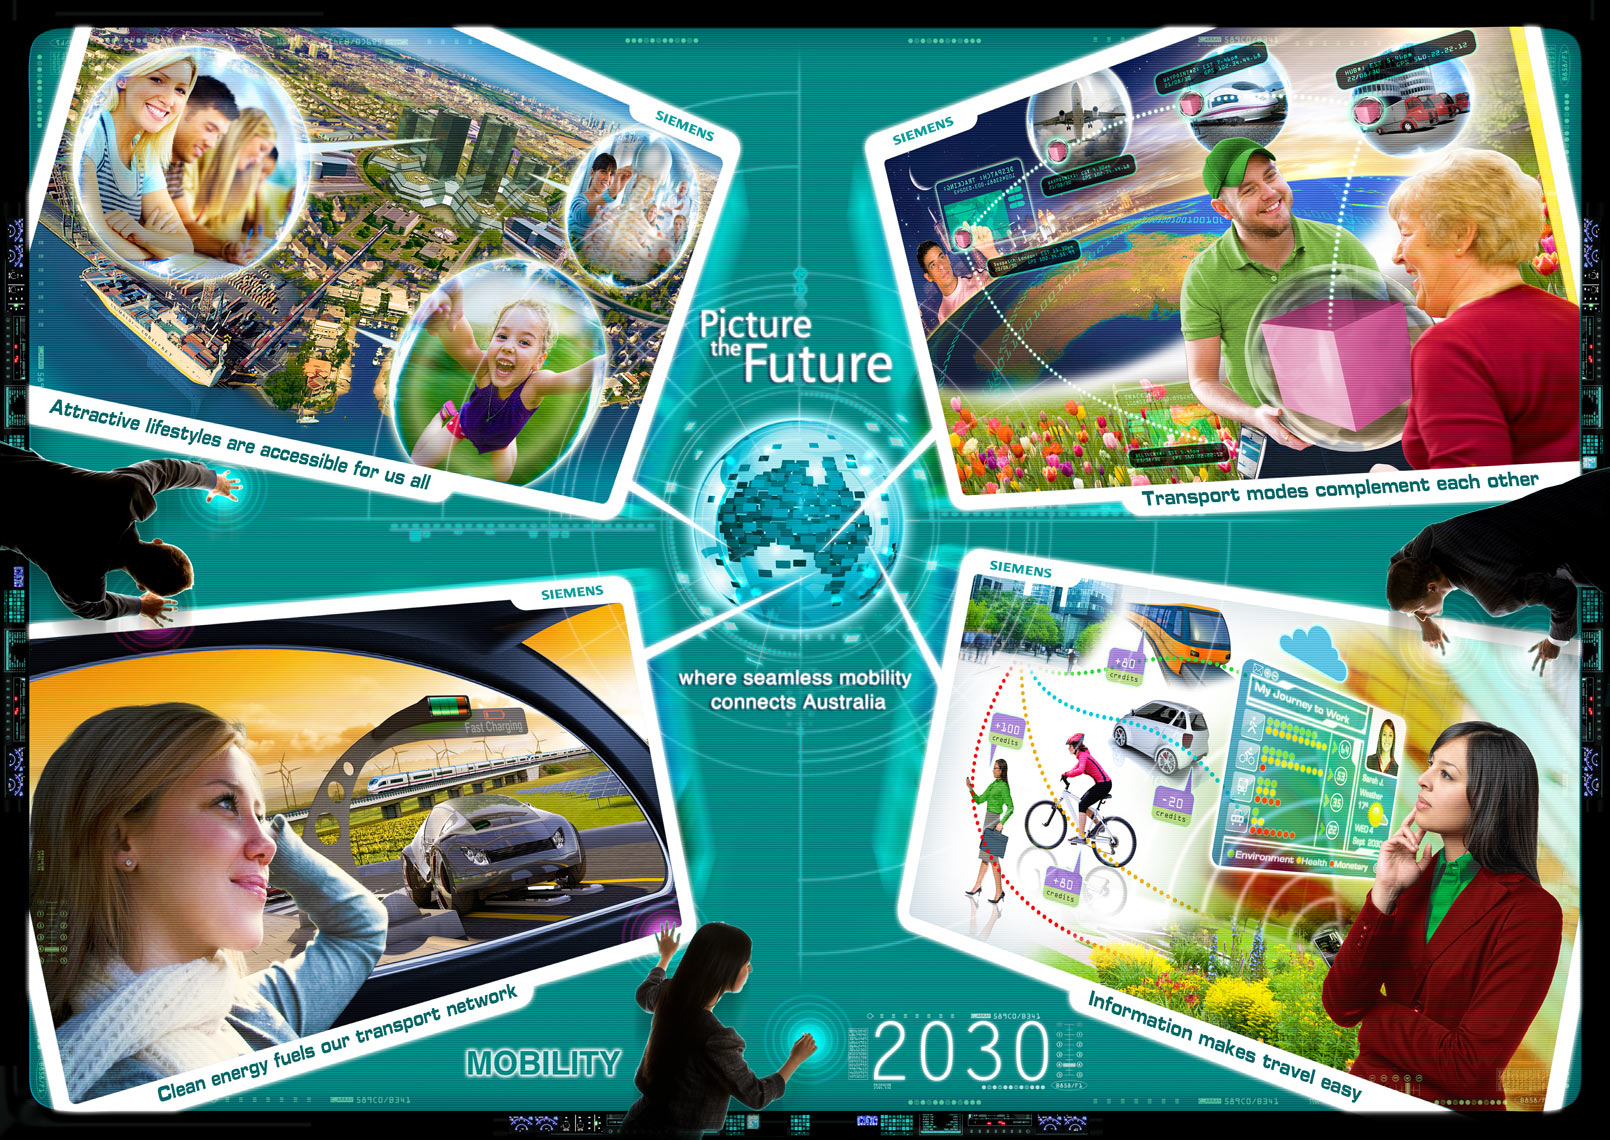 Mobility - Siemens Picture the Future communication design photoshop expert